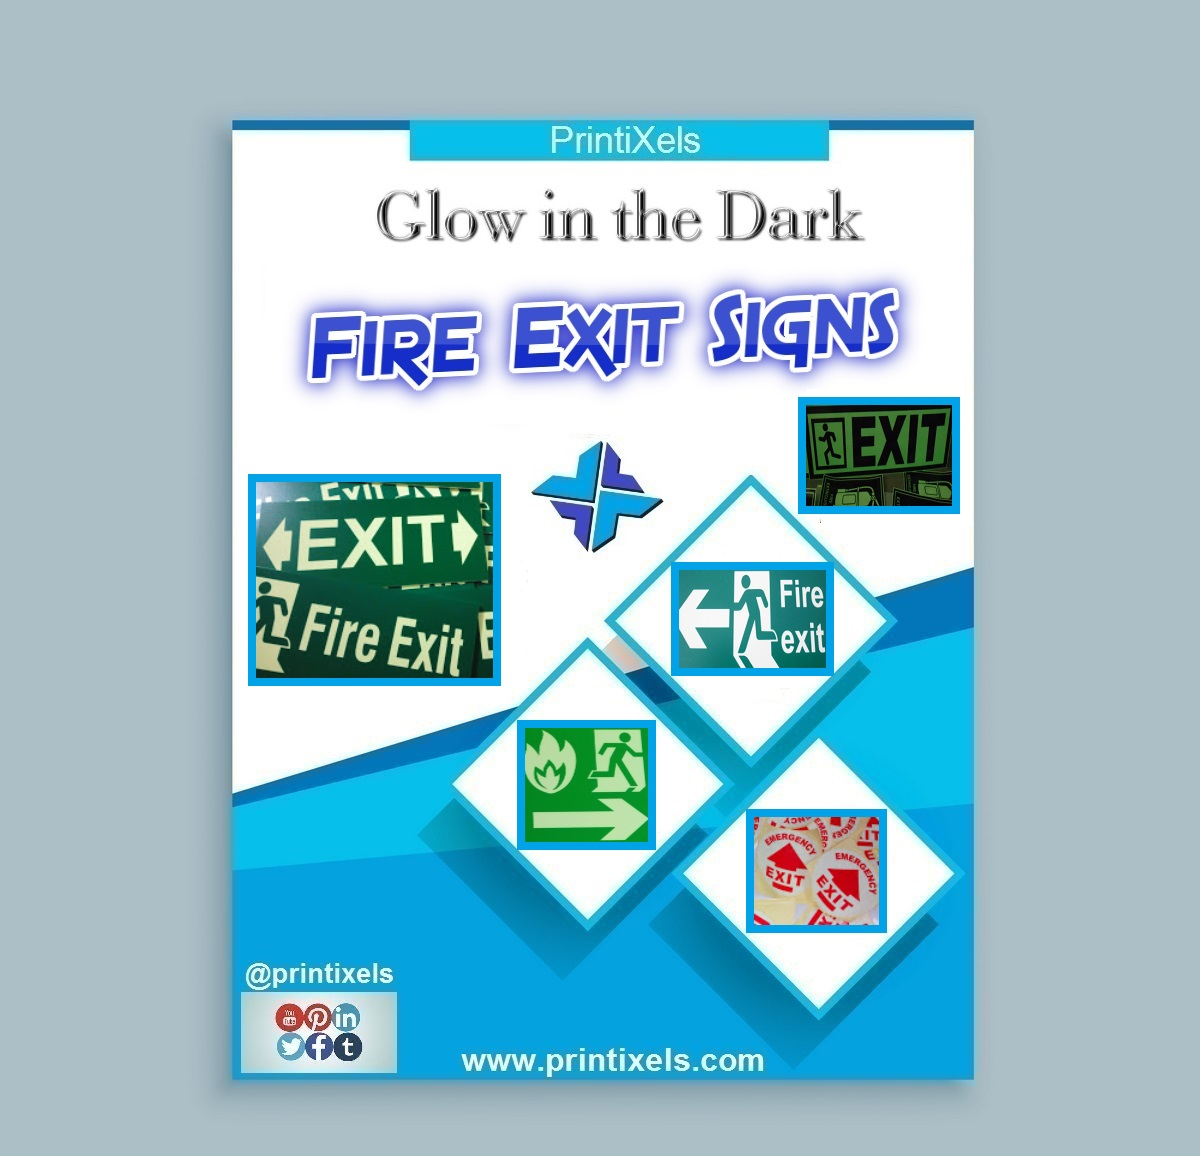 Glow in the Dark Fire Exit Signs Philippines